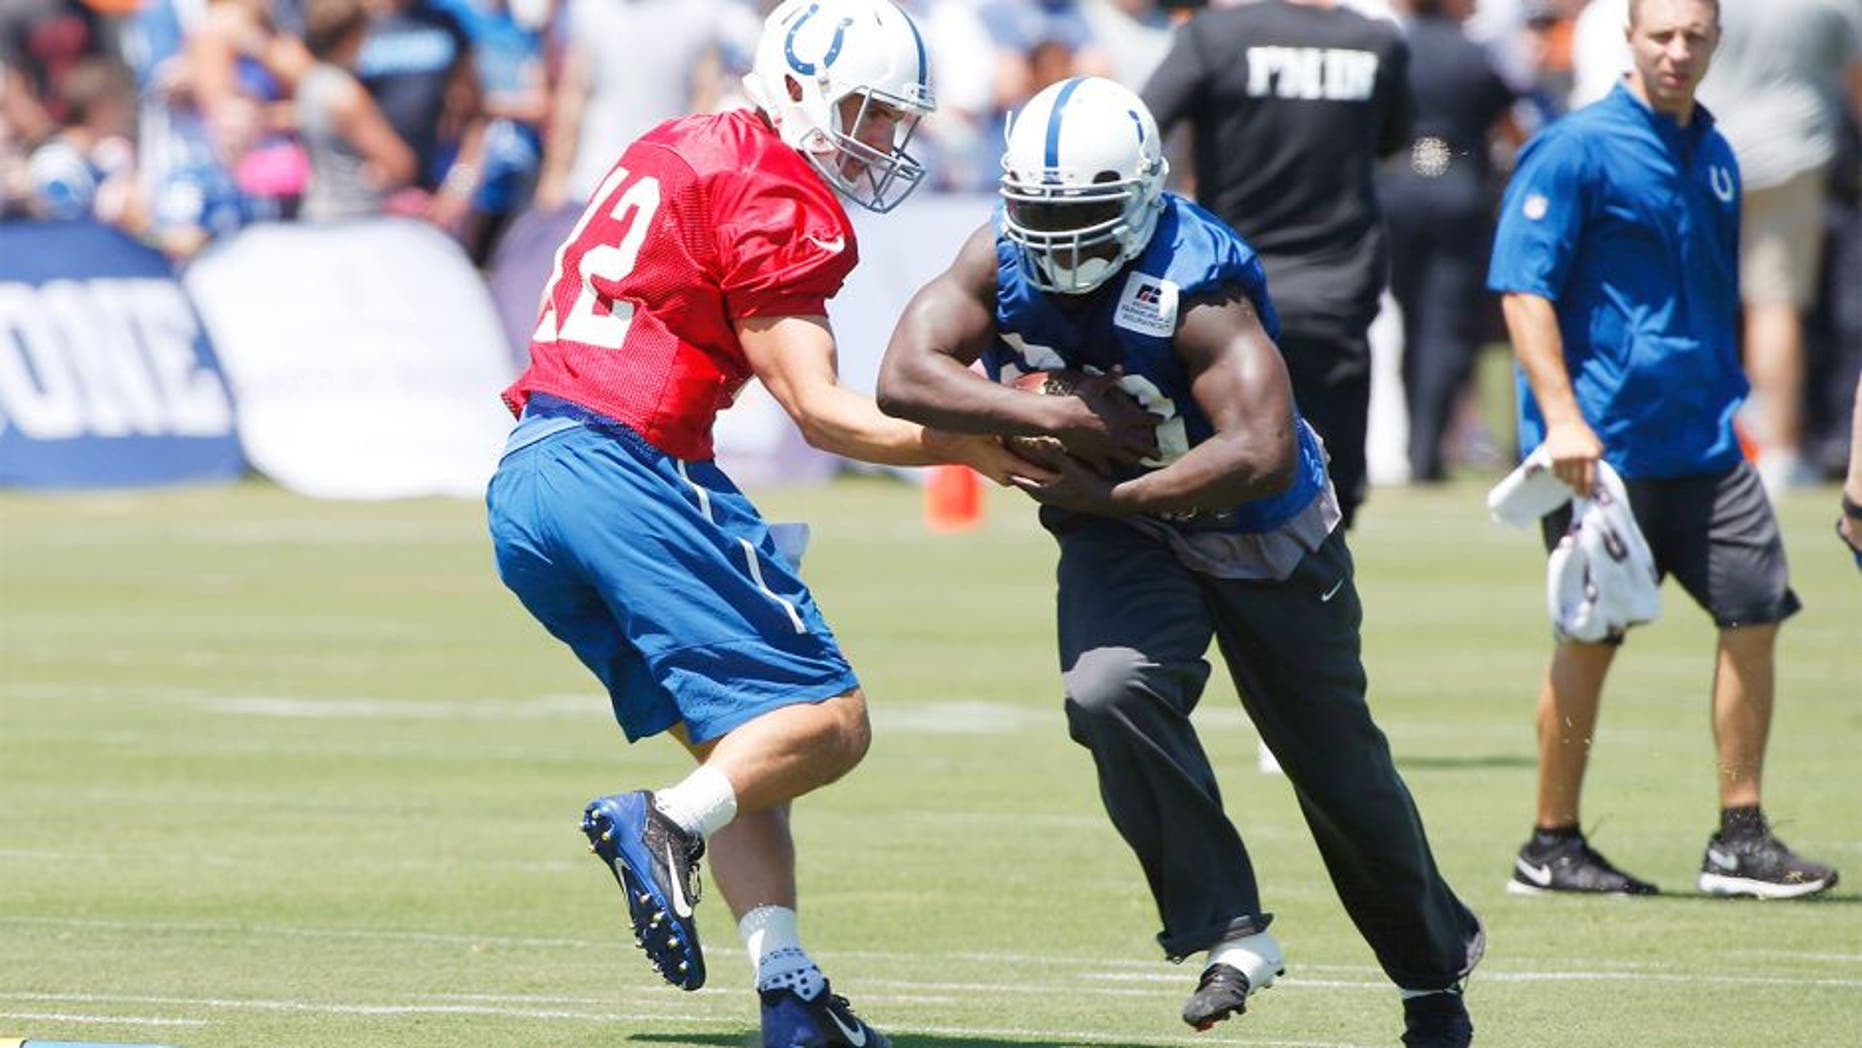 Aug 2, 2015; Anderson, IN, USA; Indianapolis Colts quarterback Andrew Luck (12) hands the ball off to running back Frank Gore (23) during training camp at Anderson University. Mandatory Credit: Brian Spurlock-USA TODAY Sports